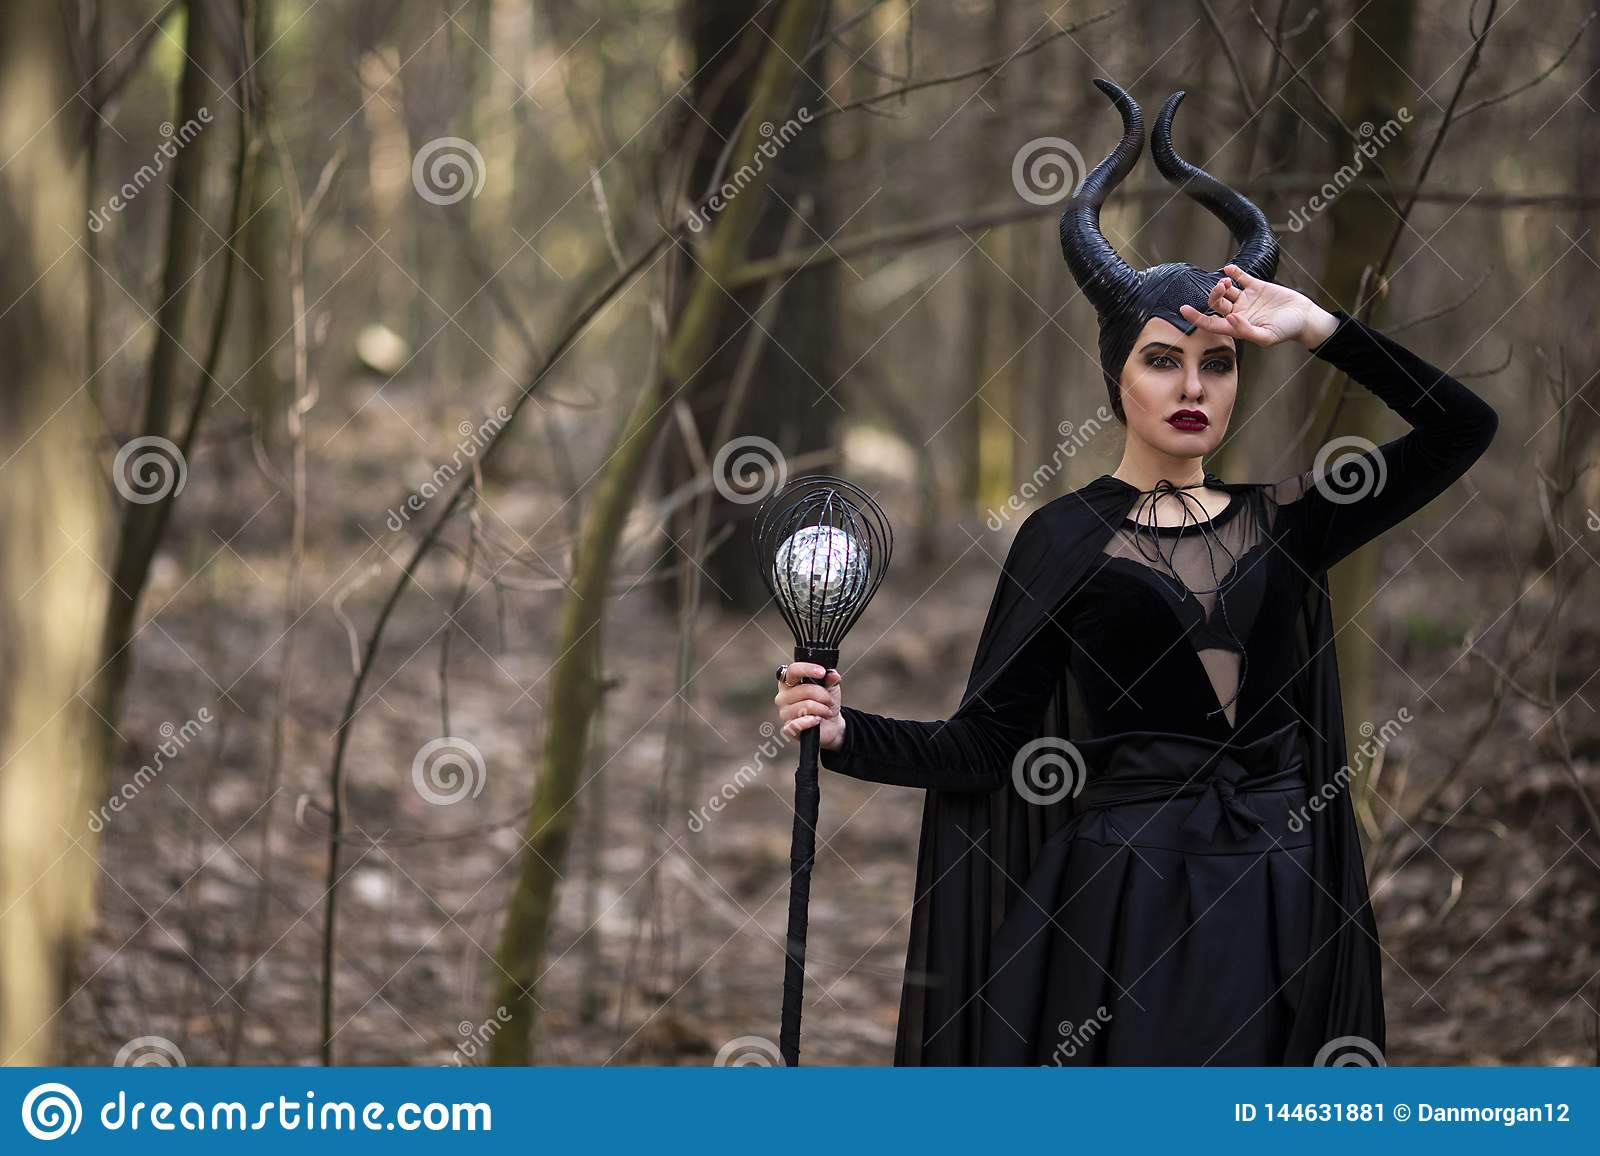 Marvellous and Magical Maleficent Woman with Horns Posing in Spring Empty Forest with Crook